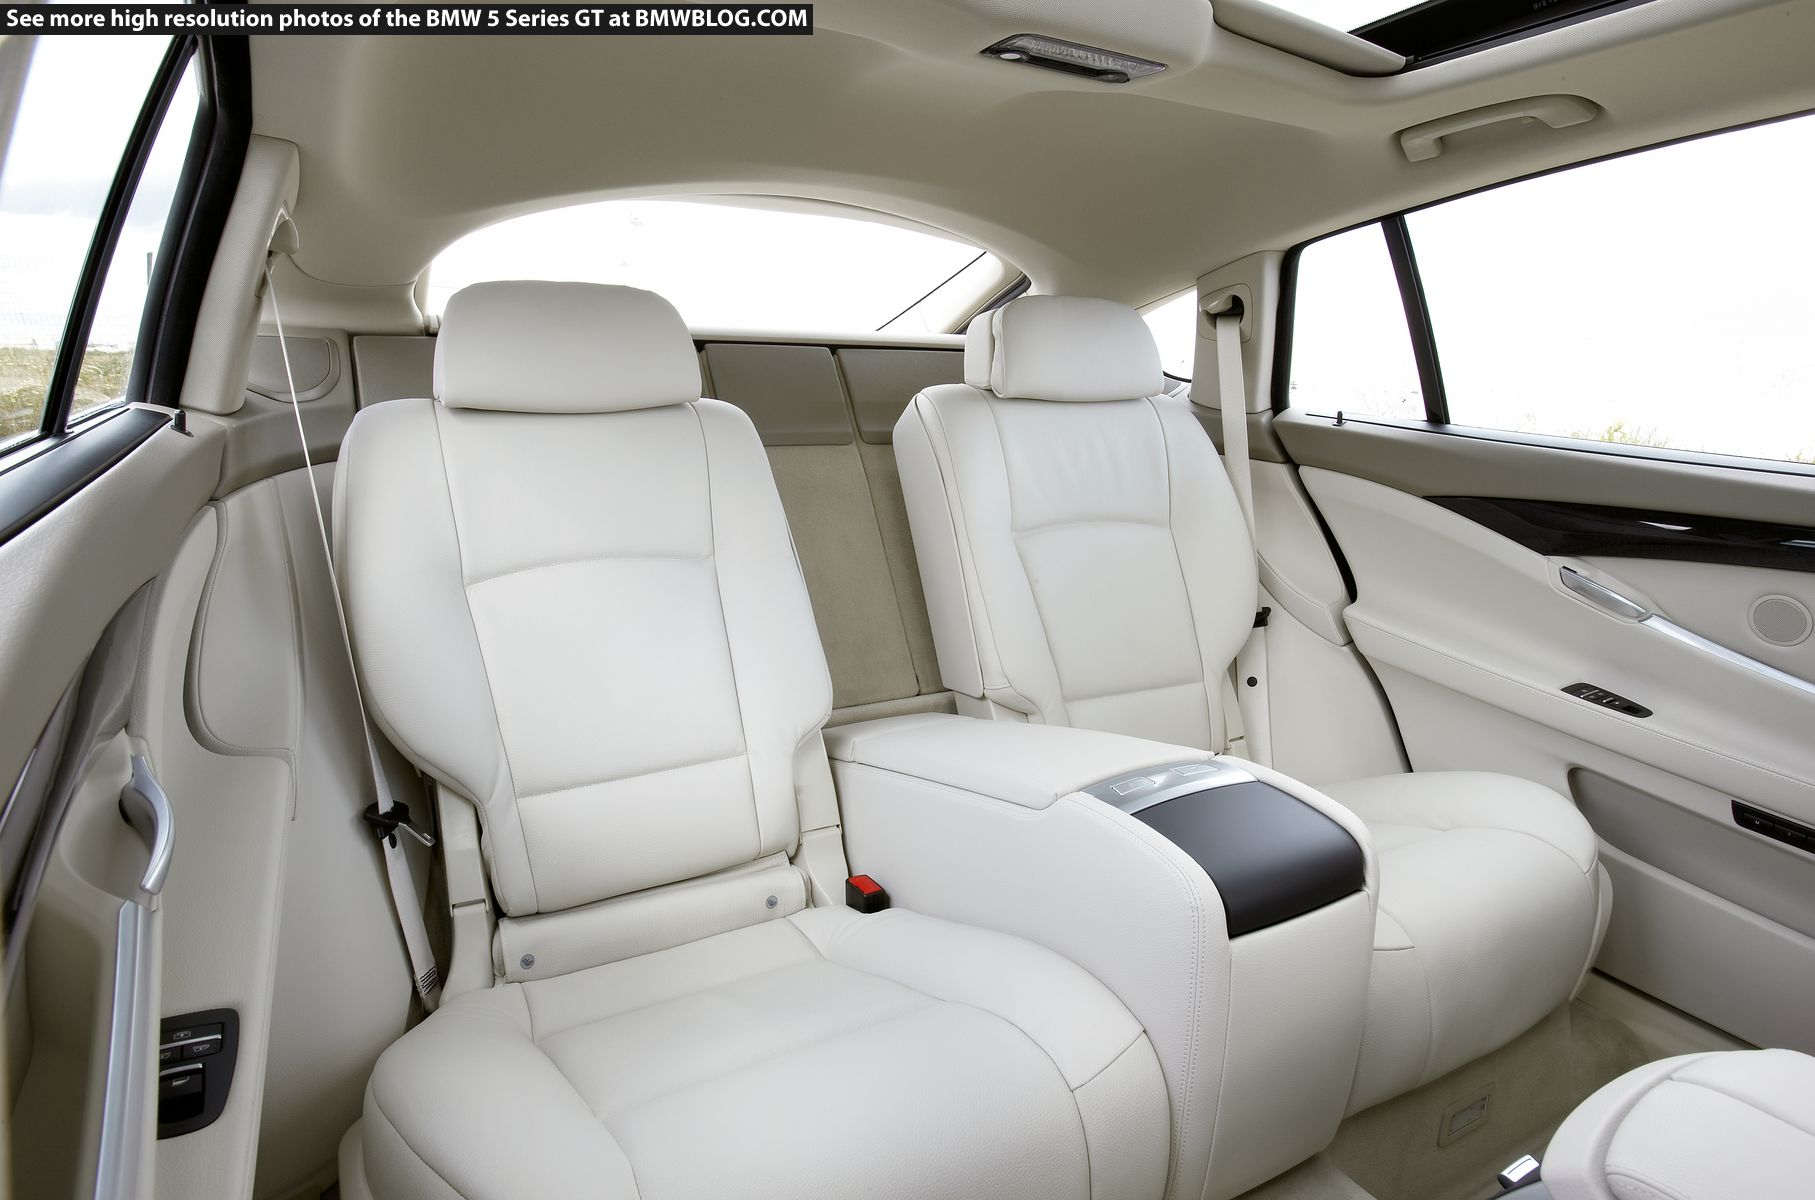 Bmw X7 Interior Seating Www Indiepedia Org